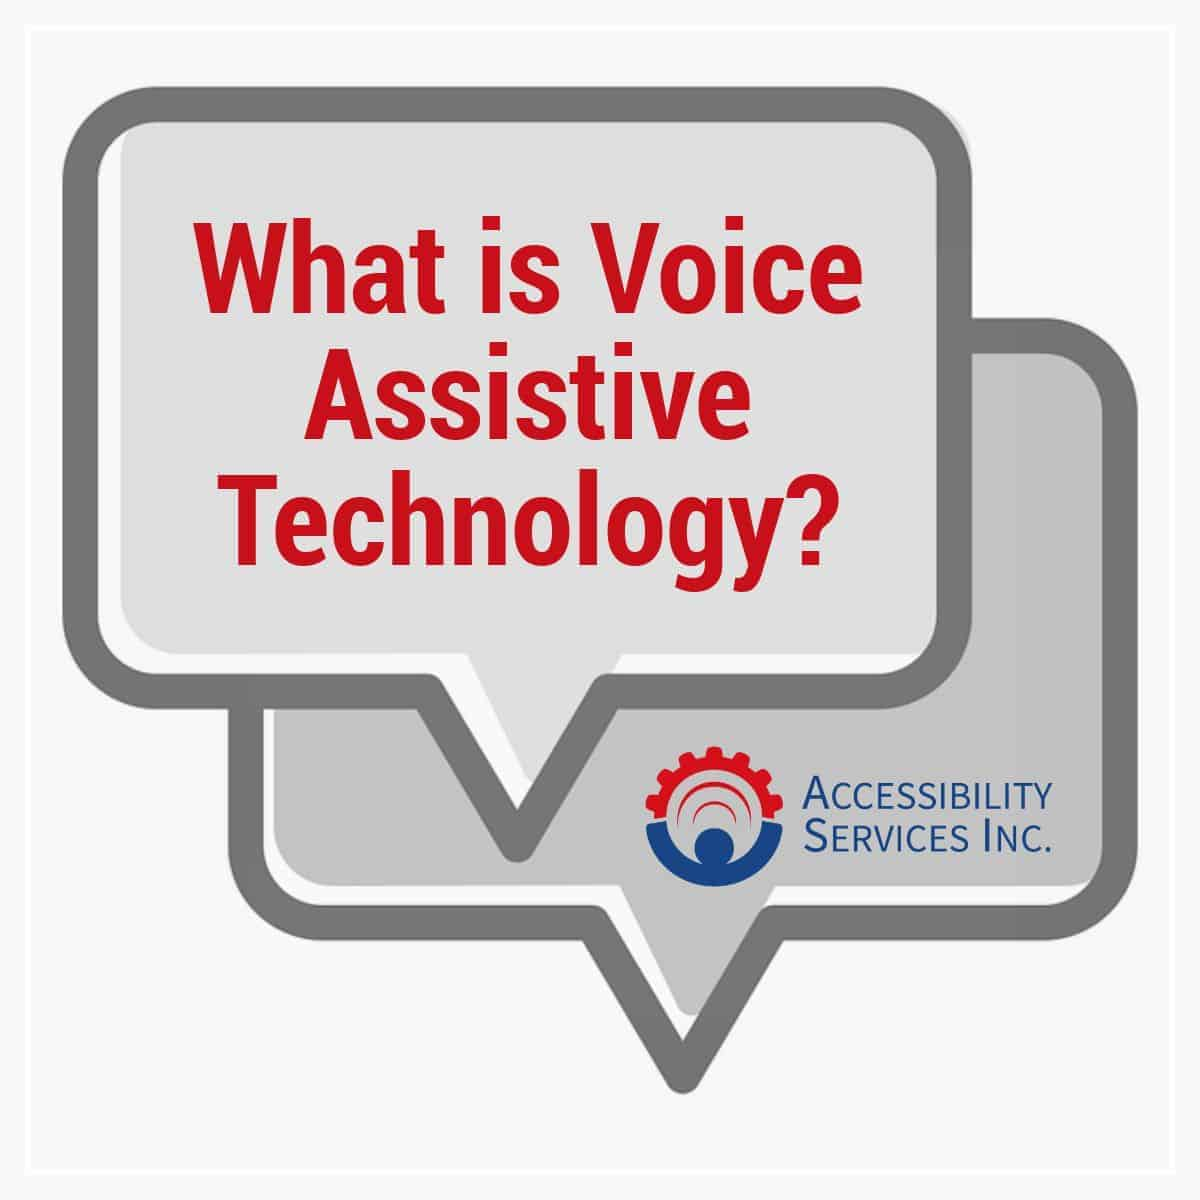 Voice Assistive Technology